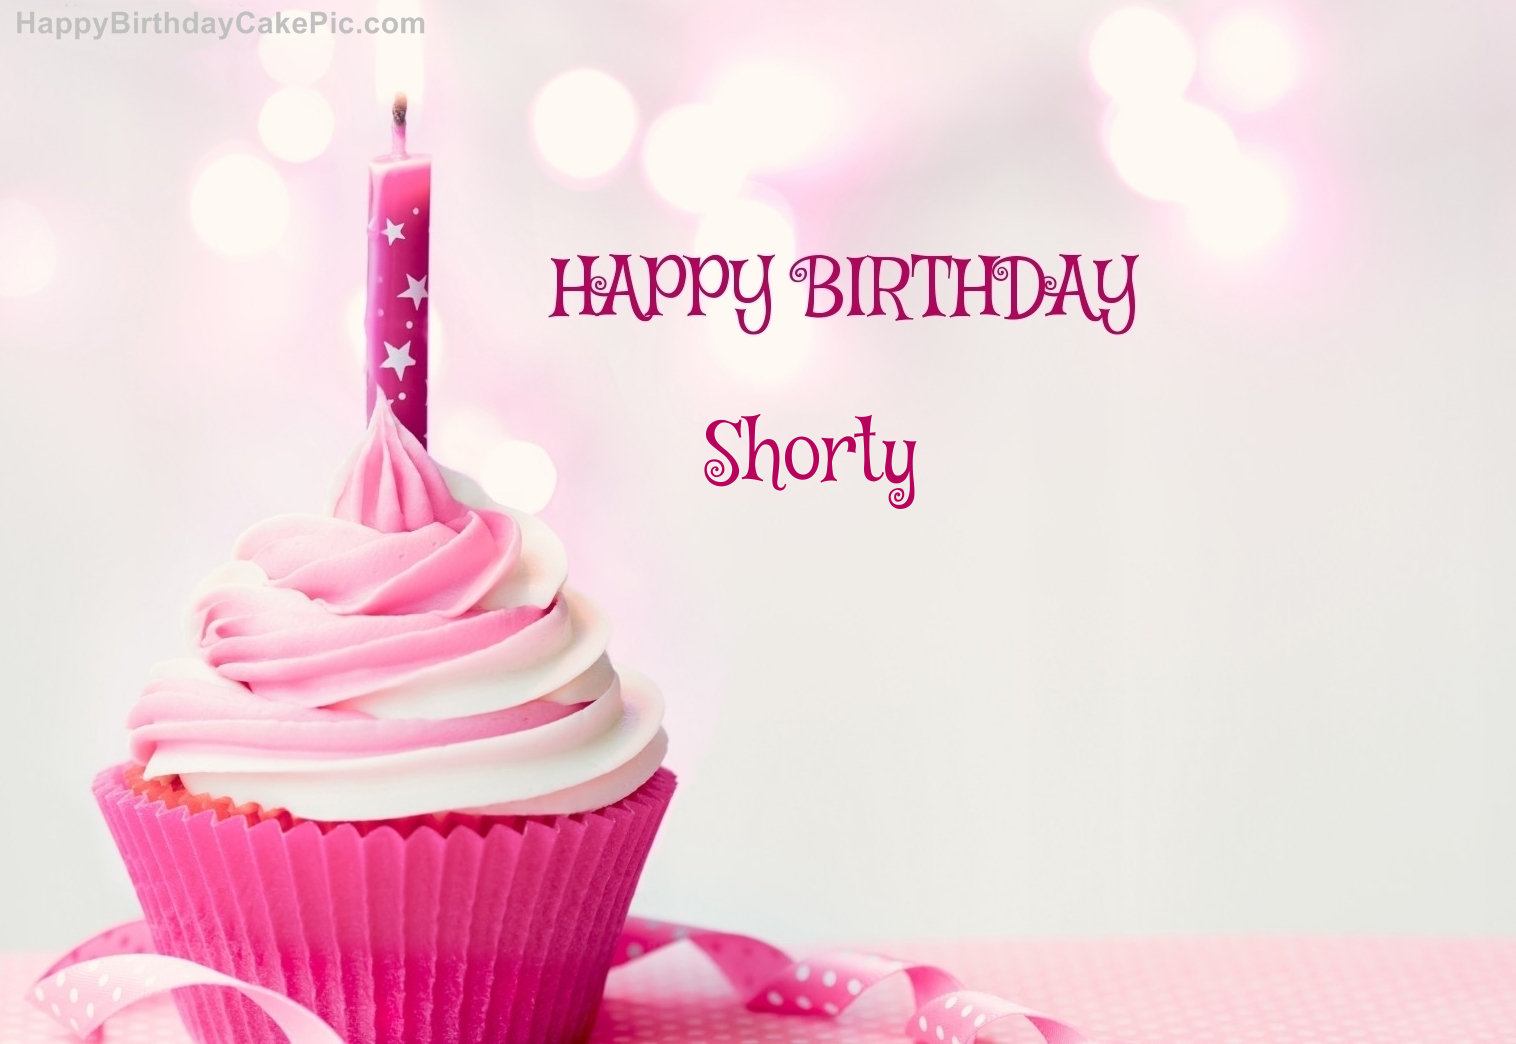 Happy Birthday Cupcake Candle Pink Cake For Shorty